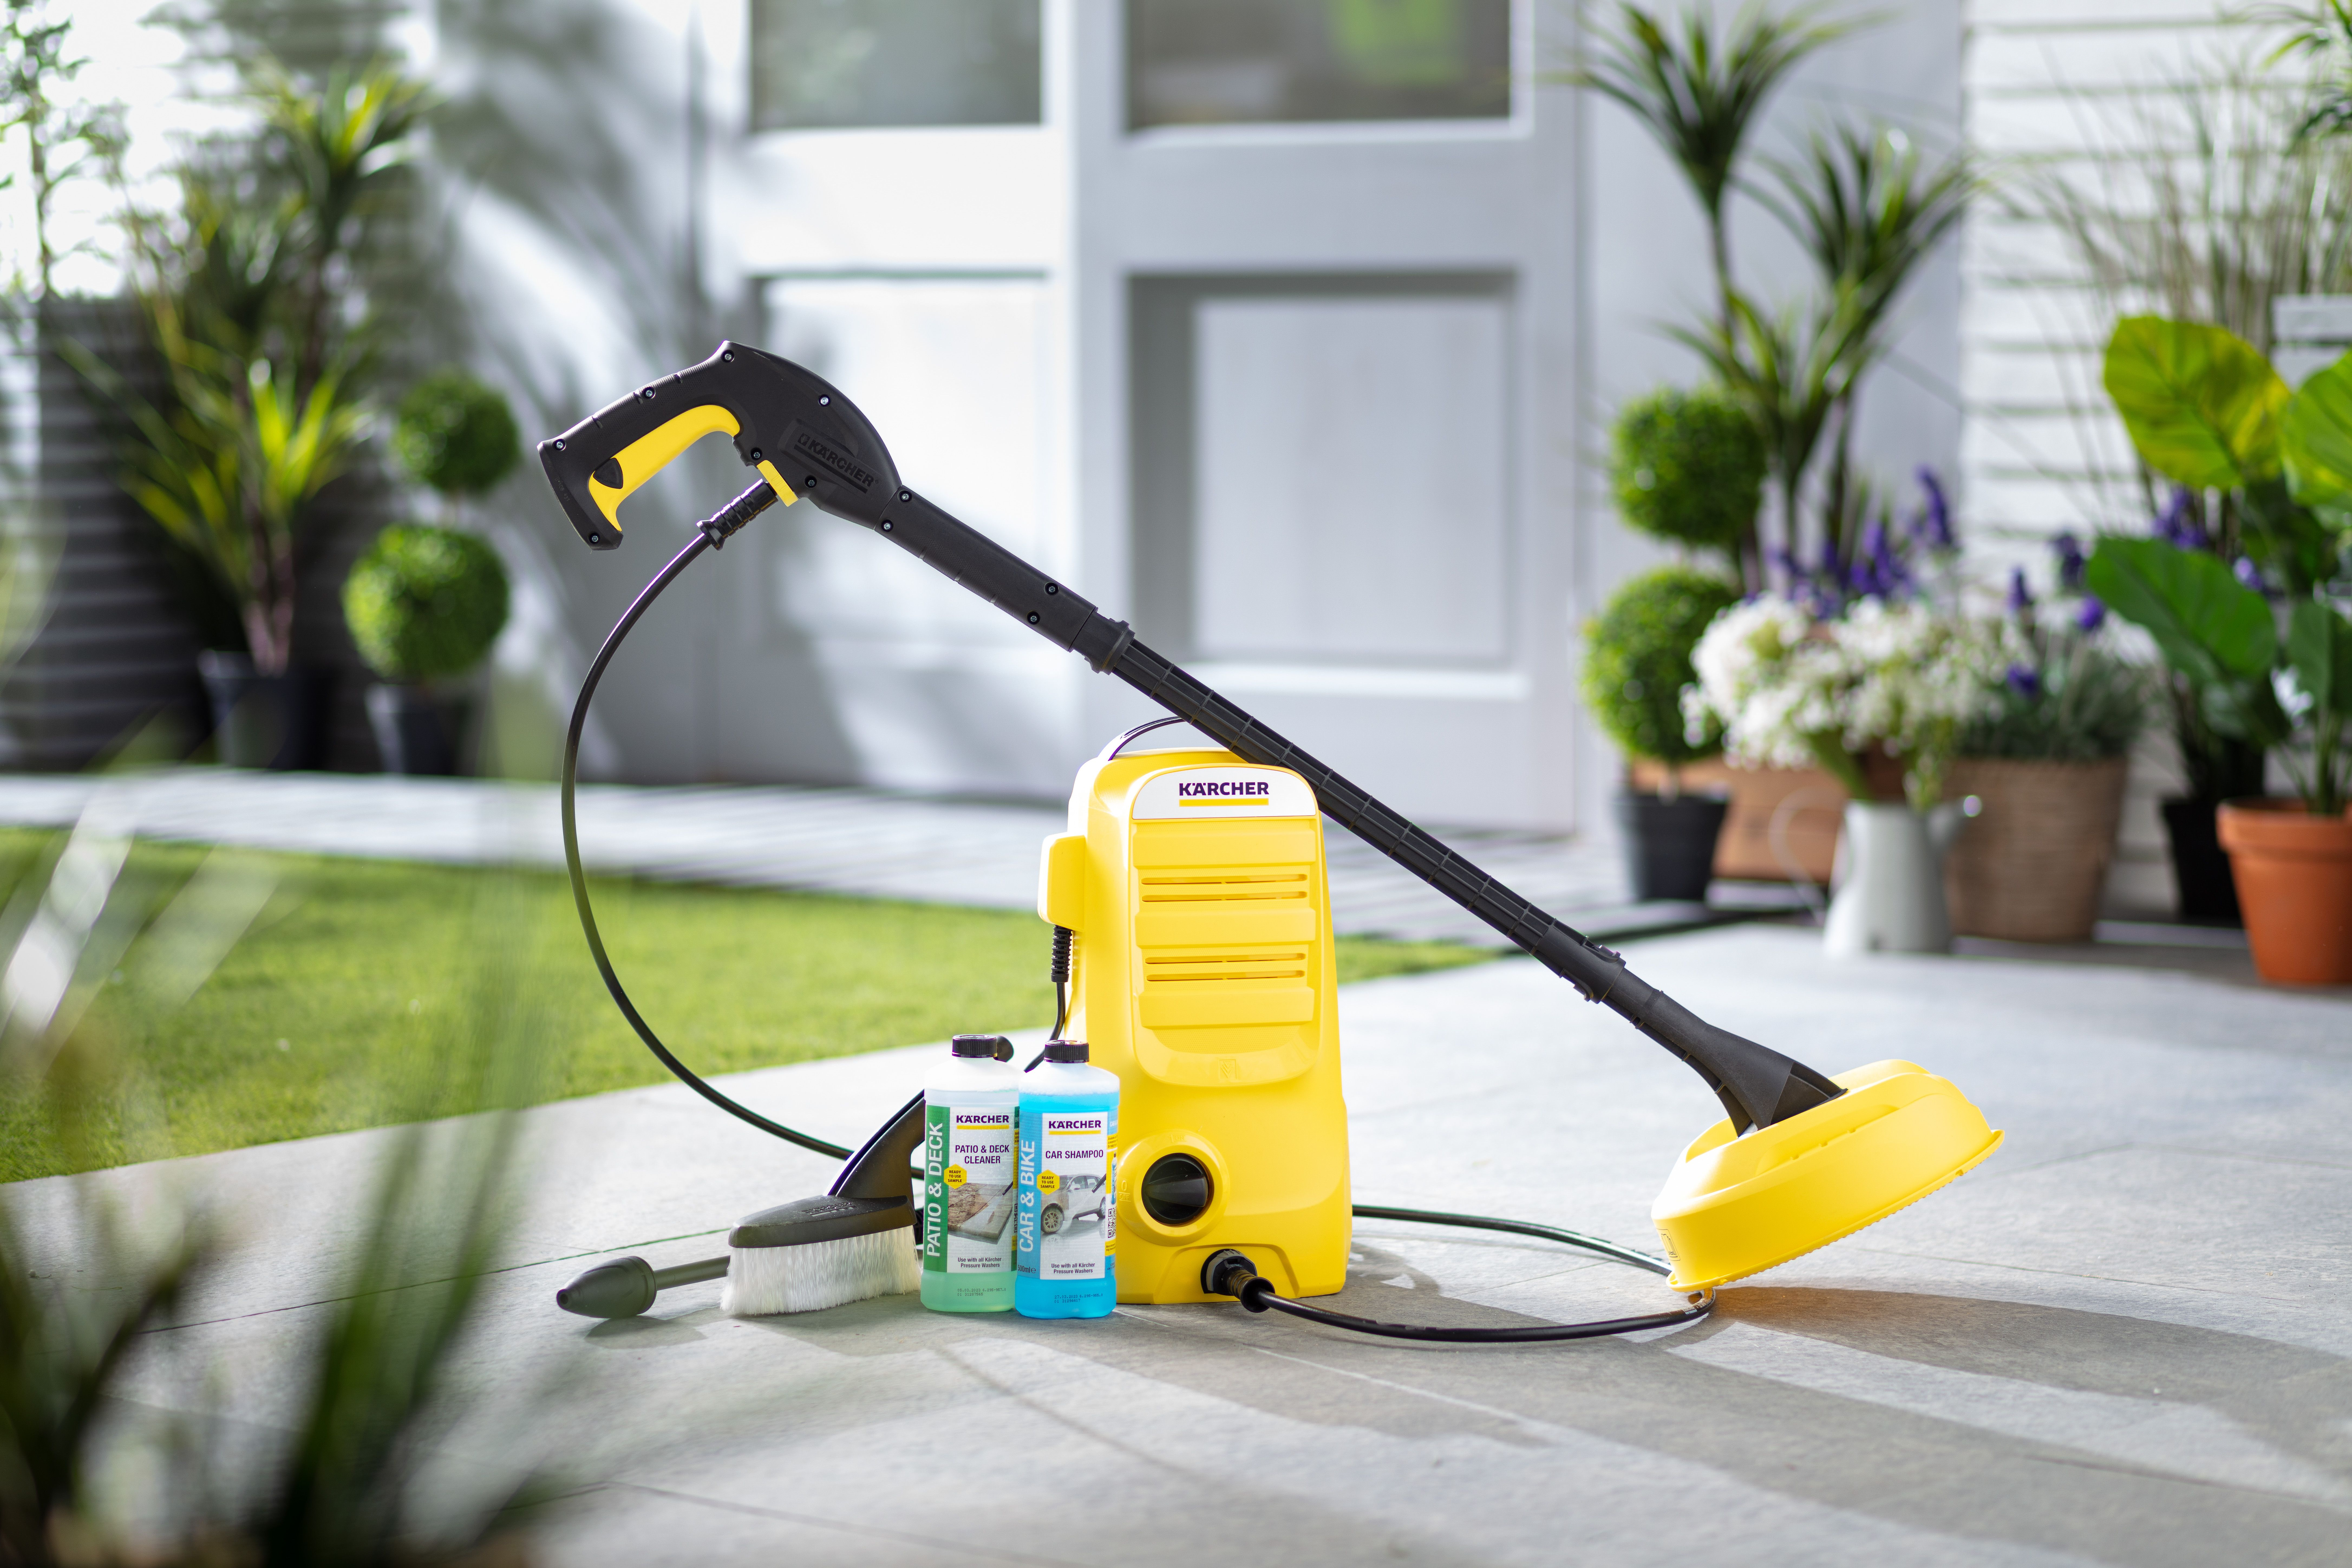 Karcher K2 Compact Home Car Pressure Washer In 2020 Pressure Washer Outdoor Cleaning Pvc Decking